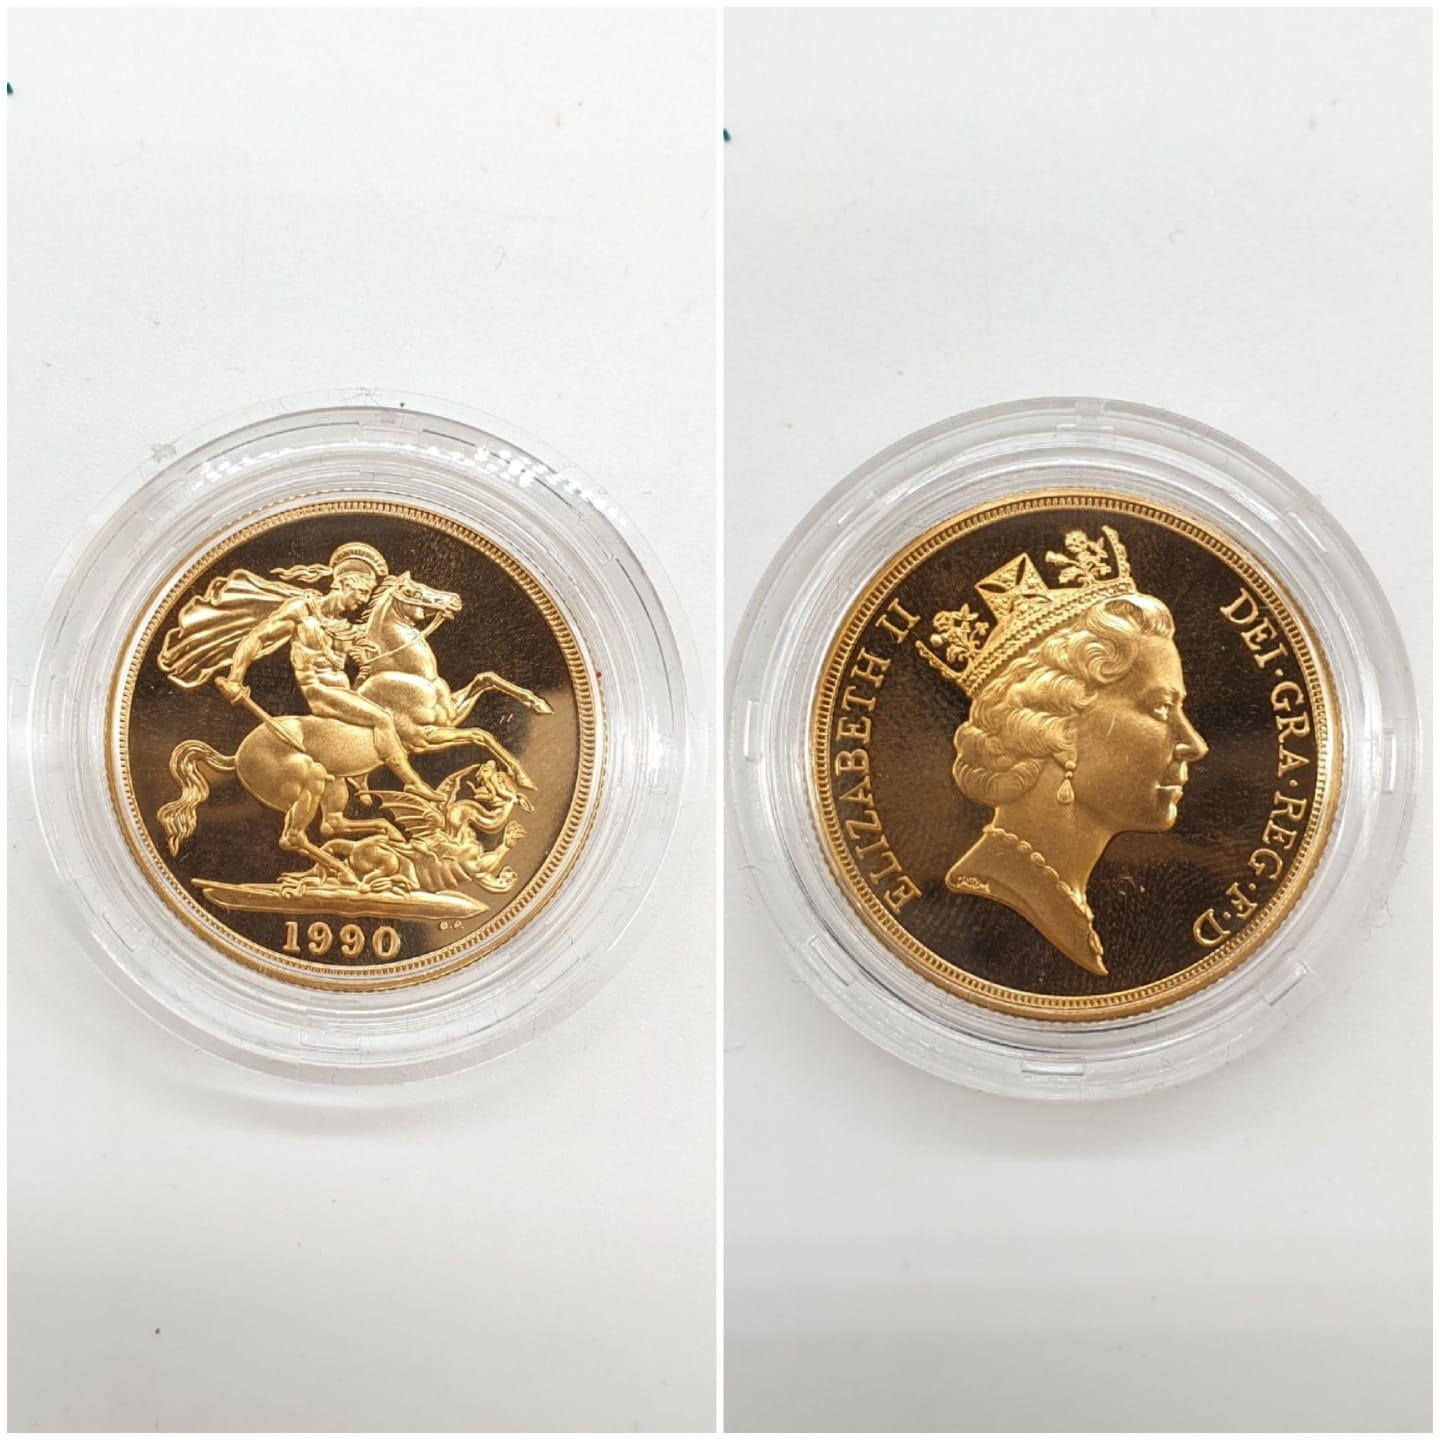 1990 UK GOLD PROOF SOVEREIGN 4 COIN COLLECTION TO INCLUDE A £5 COIN, A DOUBLE SOVEREIGN COIN, A - Image 4 of 5